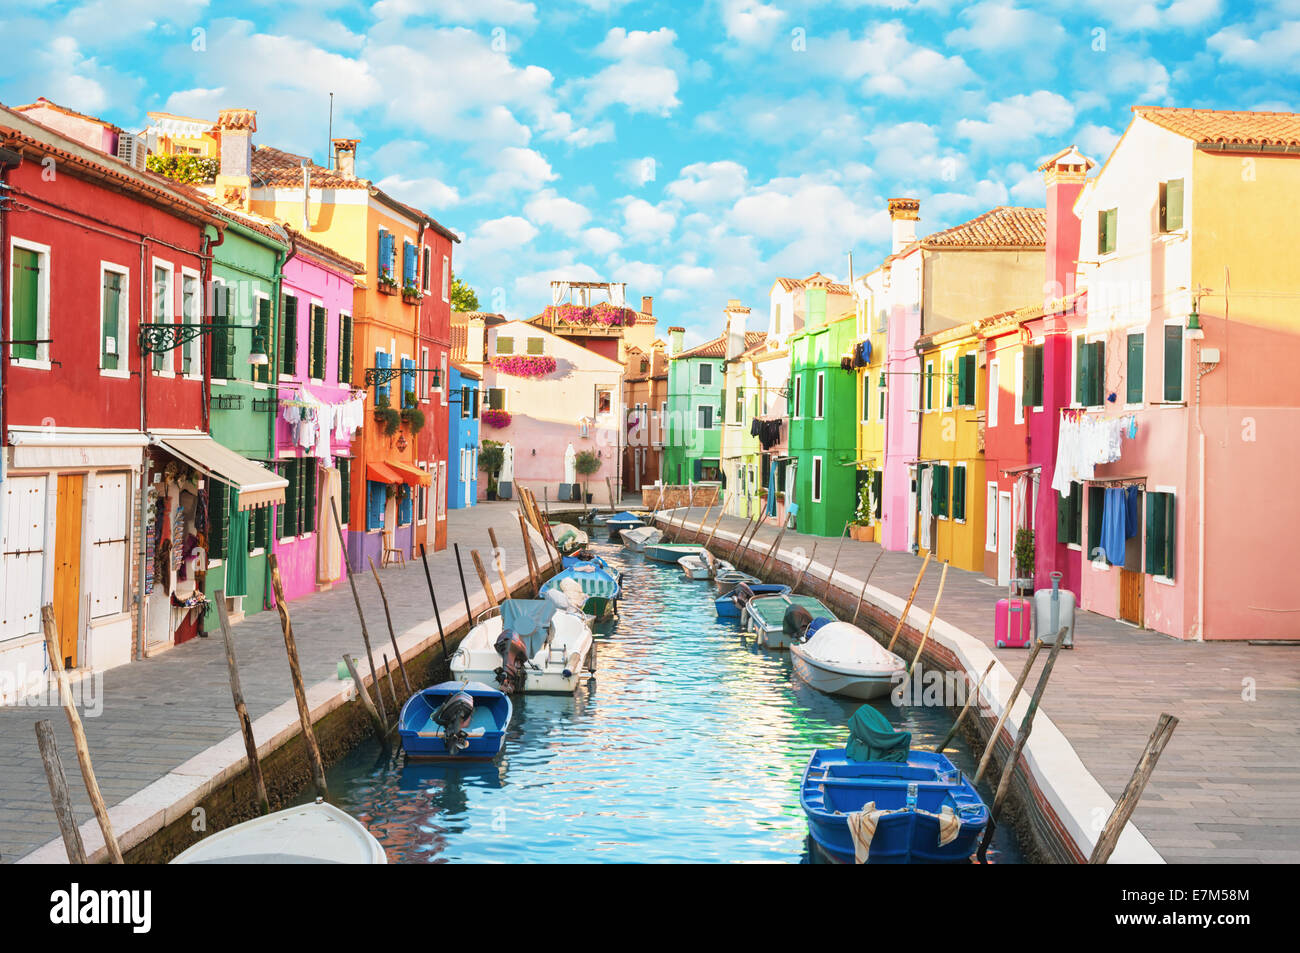 Narrow canal and colorful houses in Burano, Italy. Stock Photo